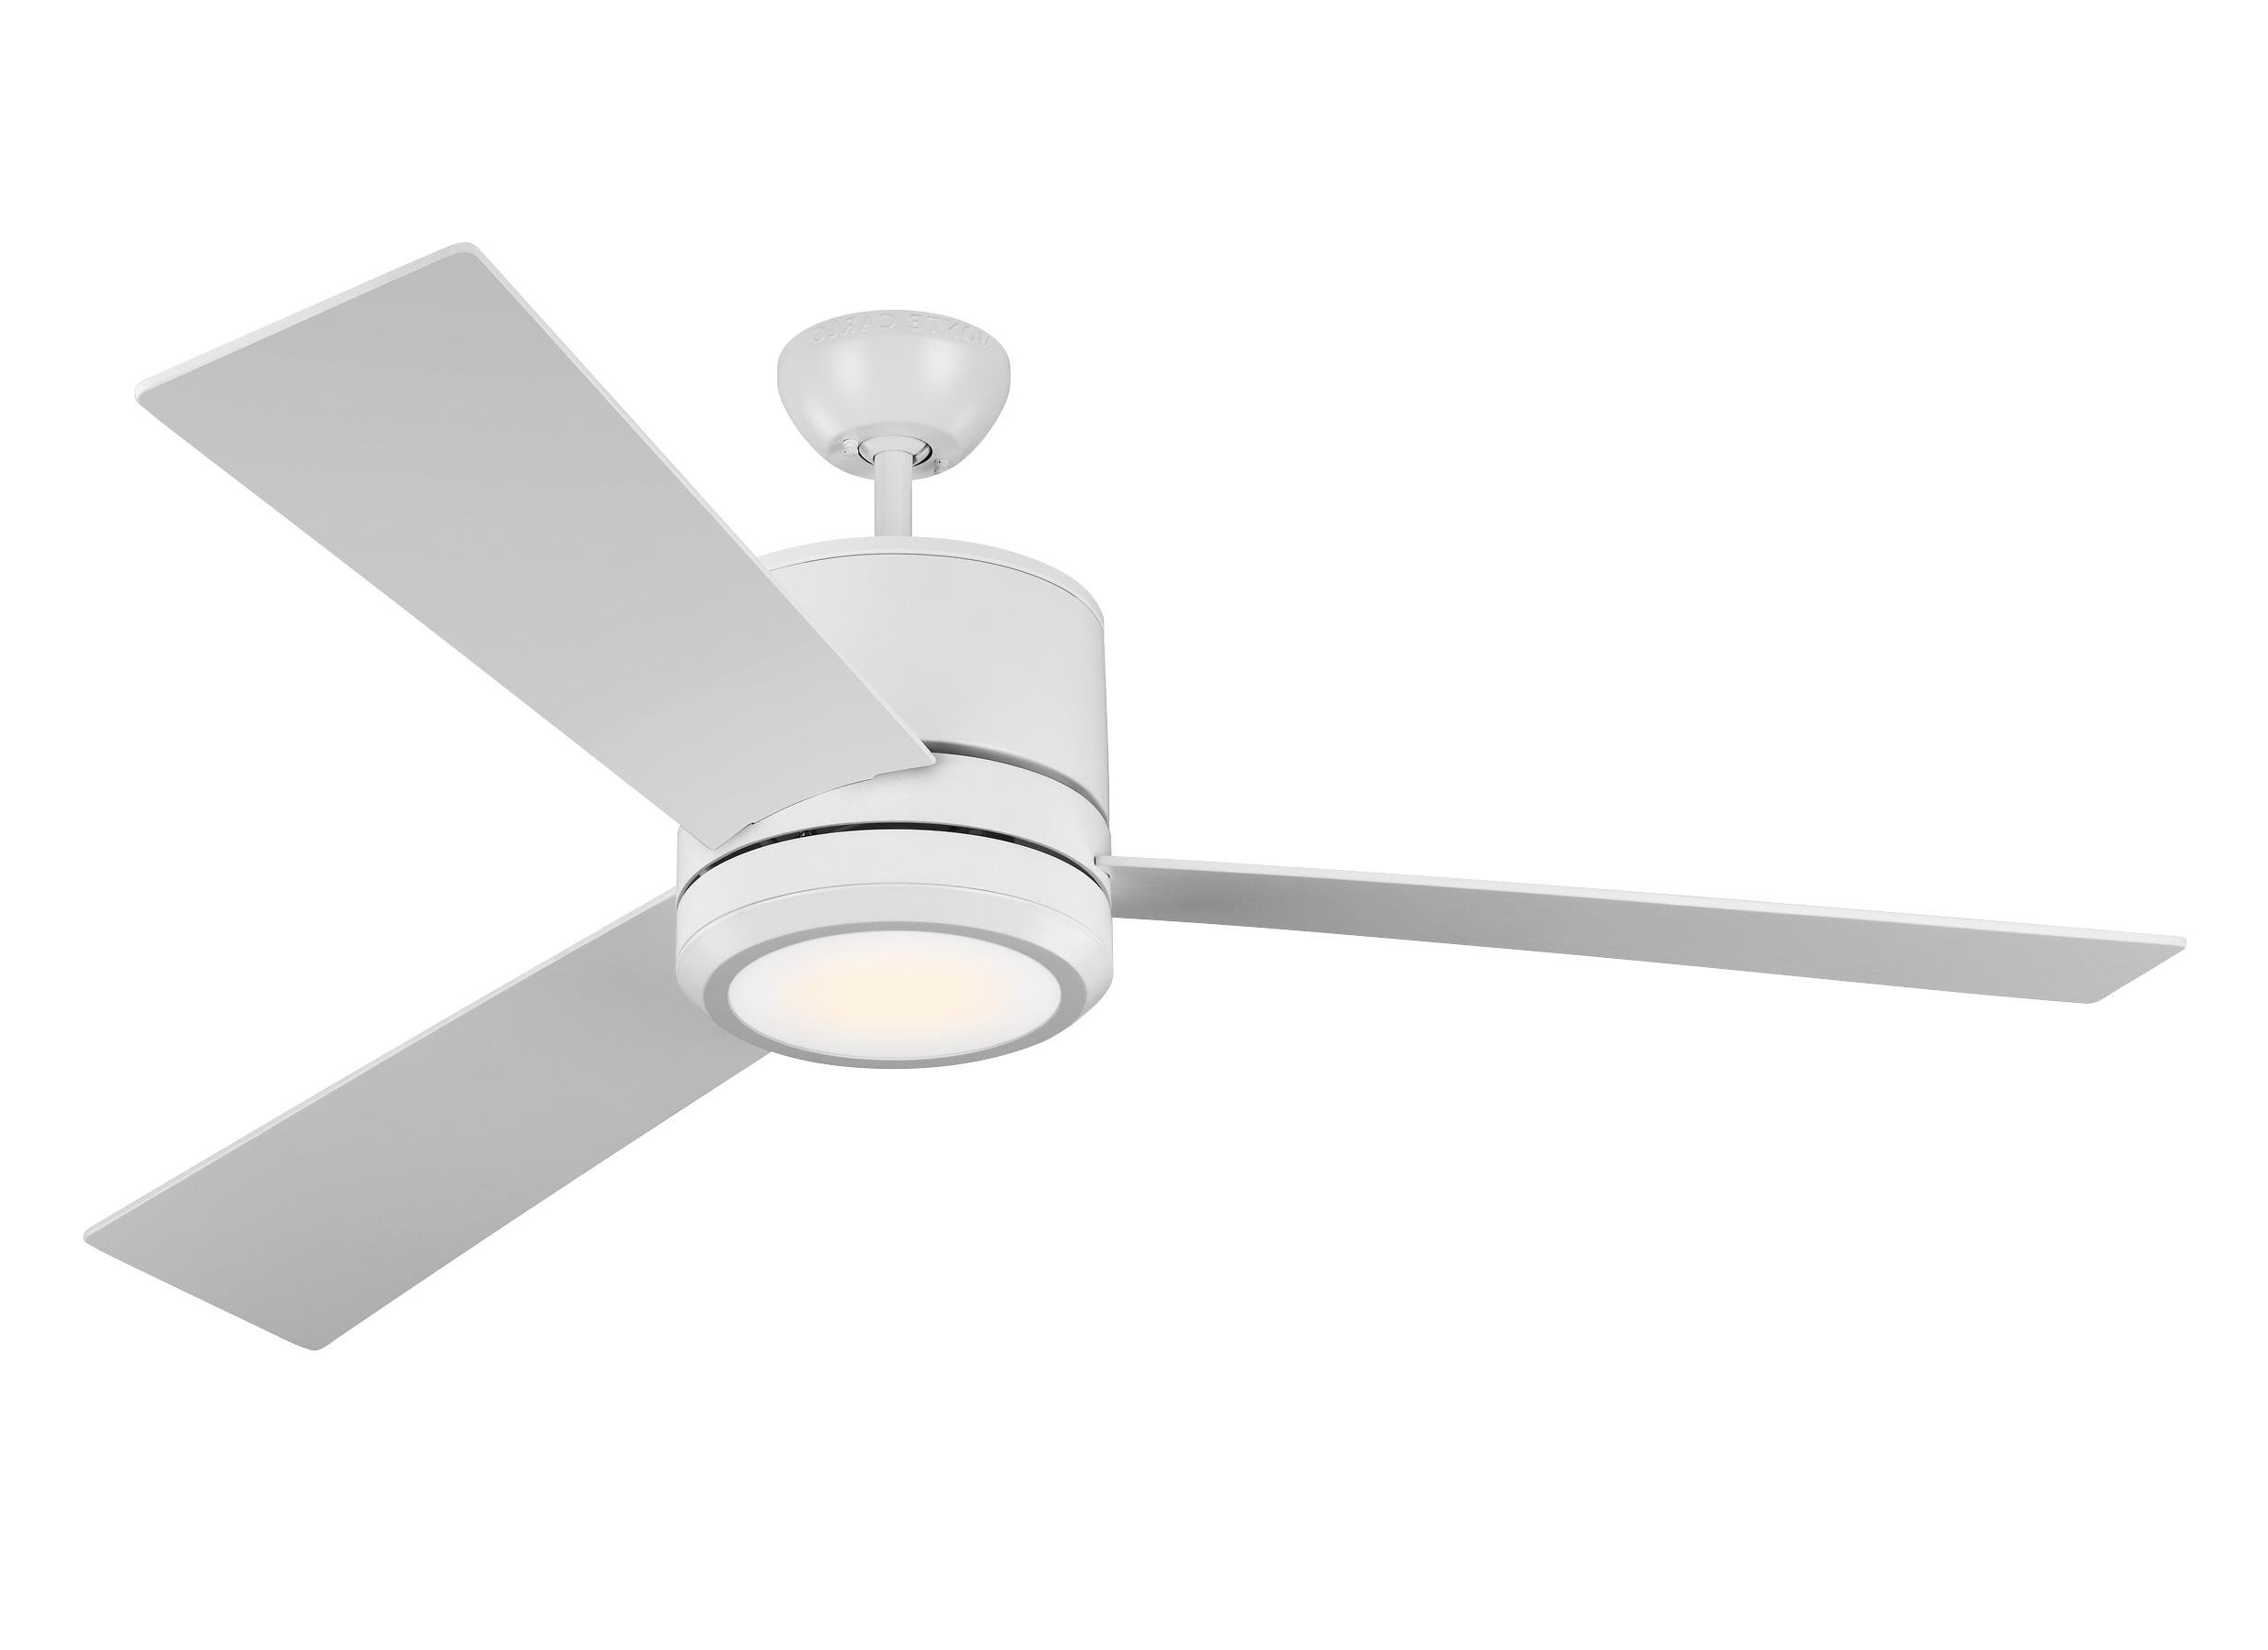 "2020 Cedarton 5 Blade Led Ceiling Fans With Regard To 56"" Ossu 3 Blade Led Ceiling Fan, Light Kit Included (View 19 of 20)"